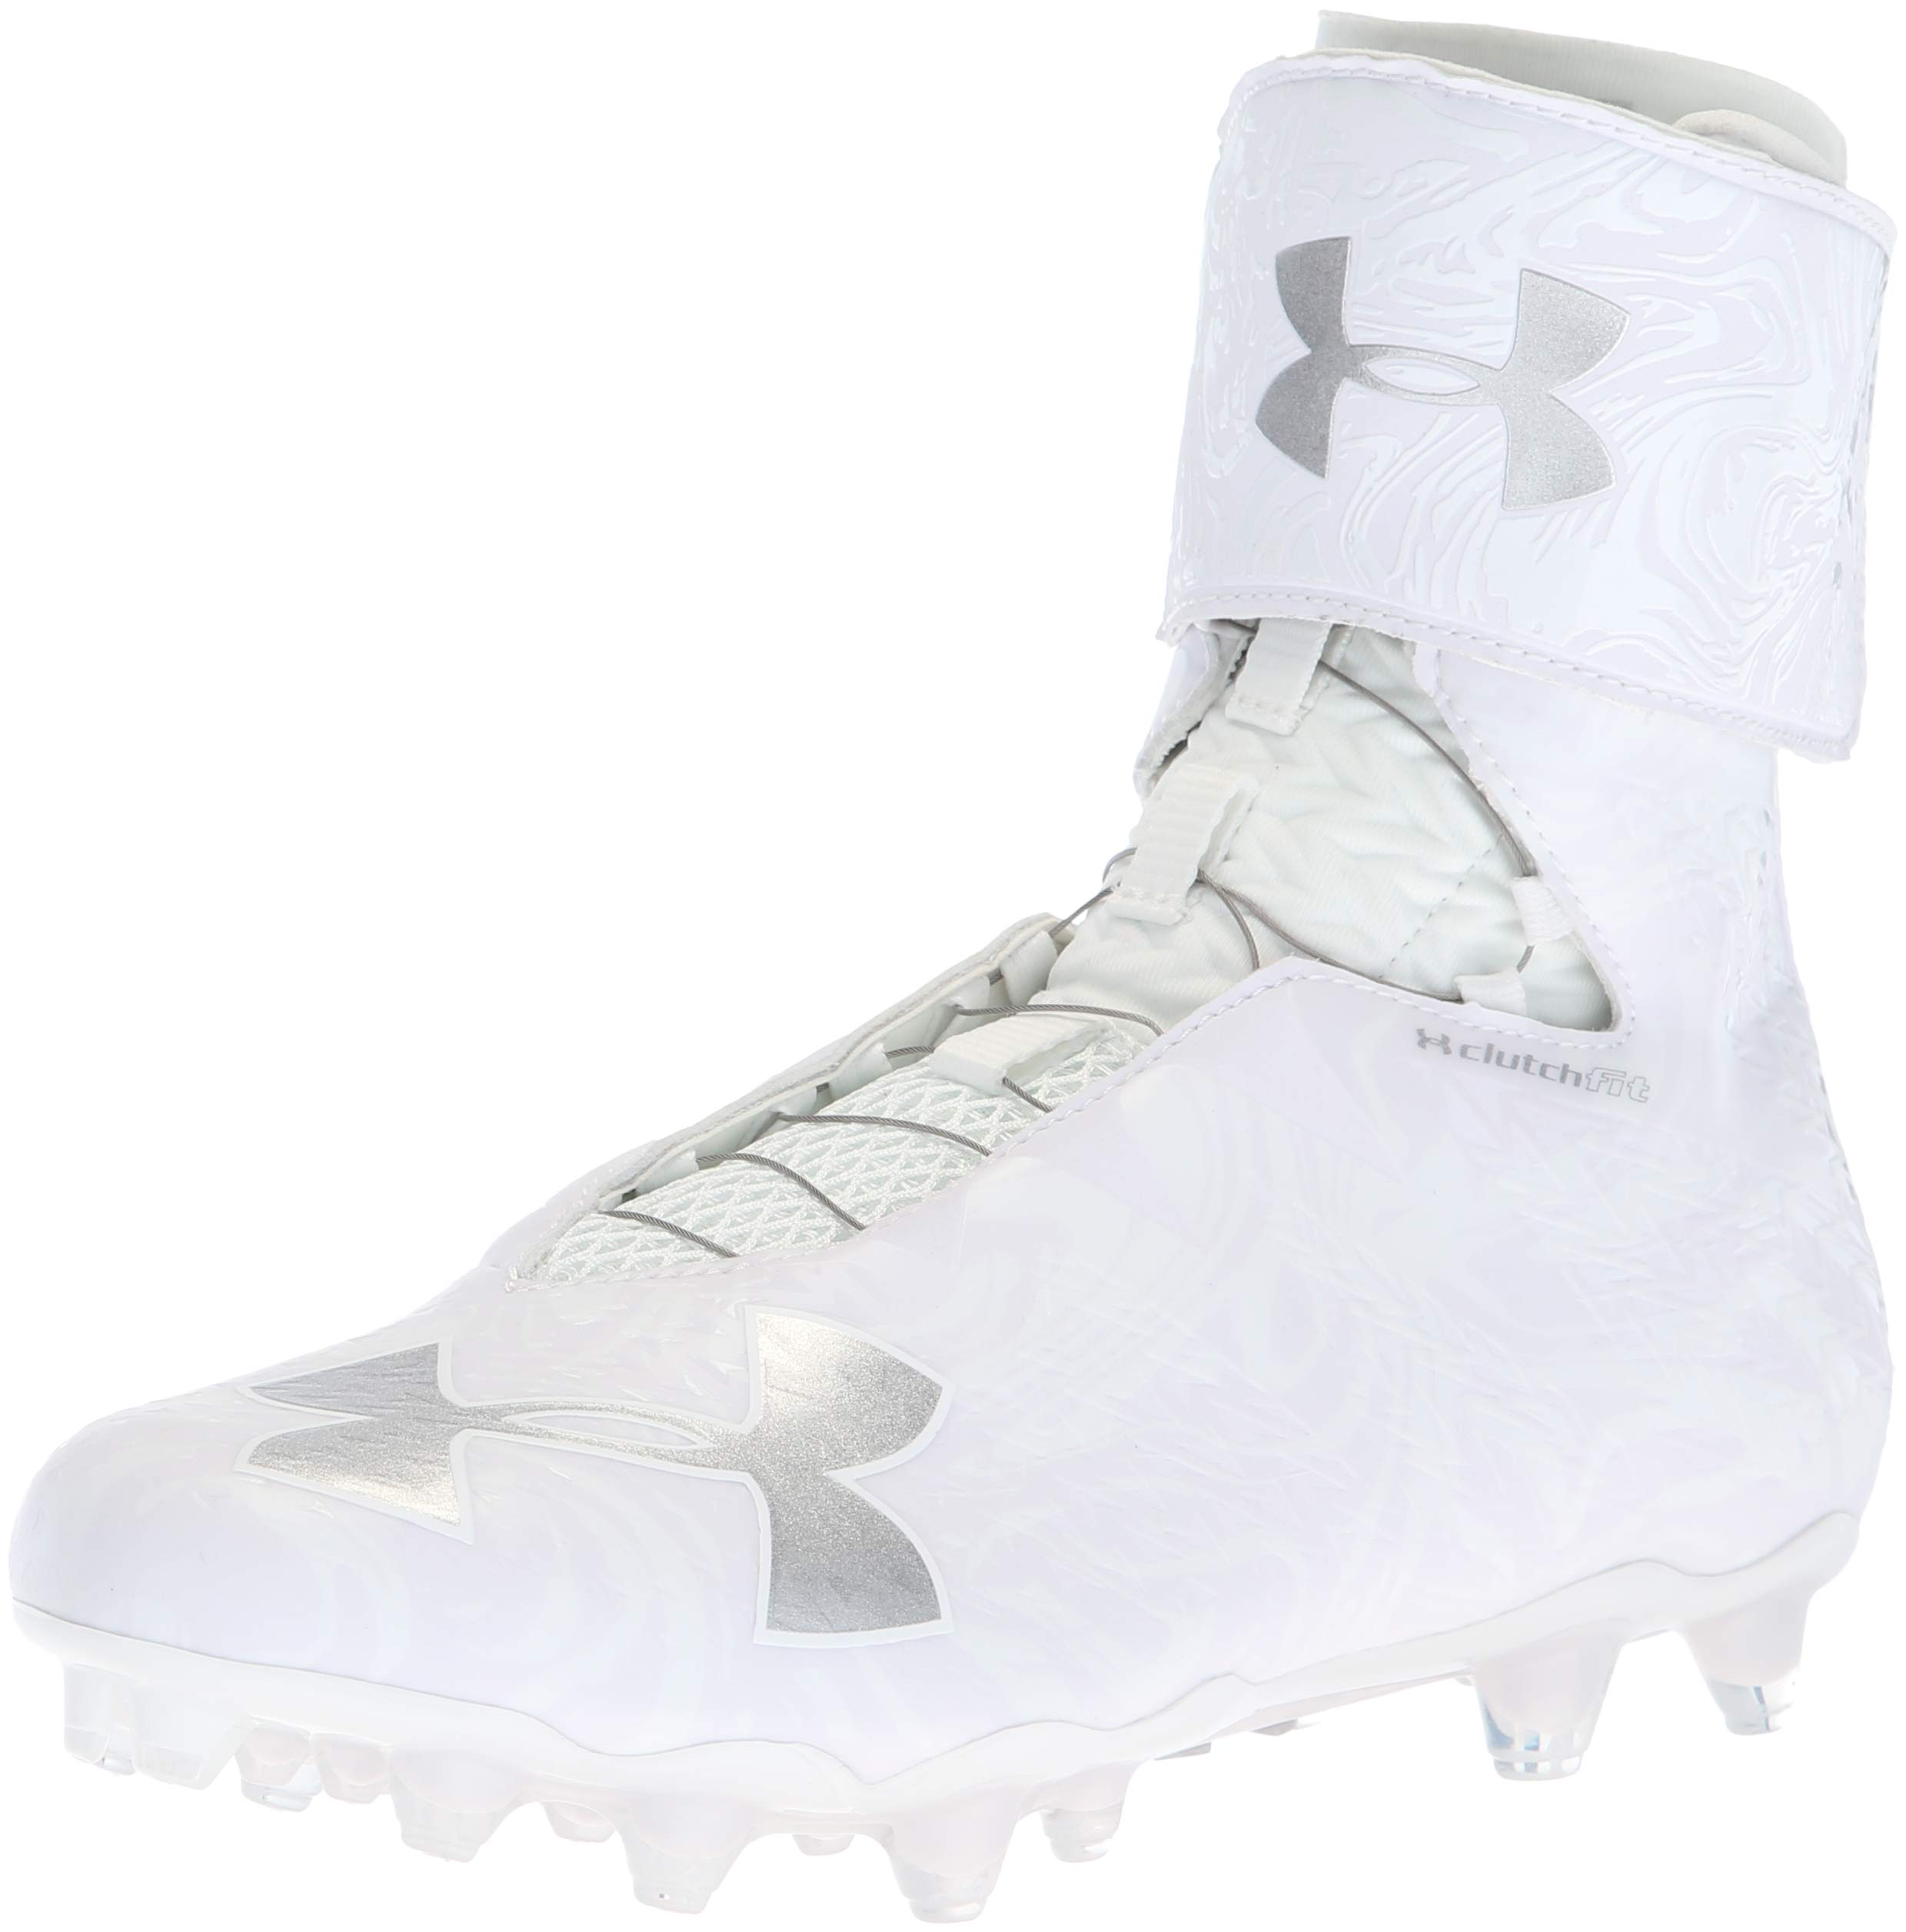 4428b5904 Galleon - Under Armour Men s Highlight MC 2.0 Football Shoe